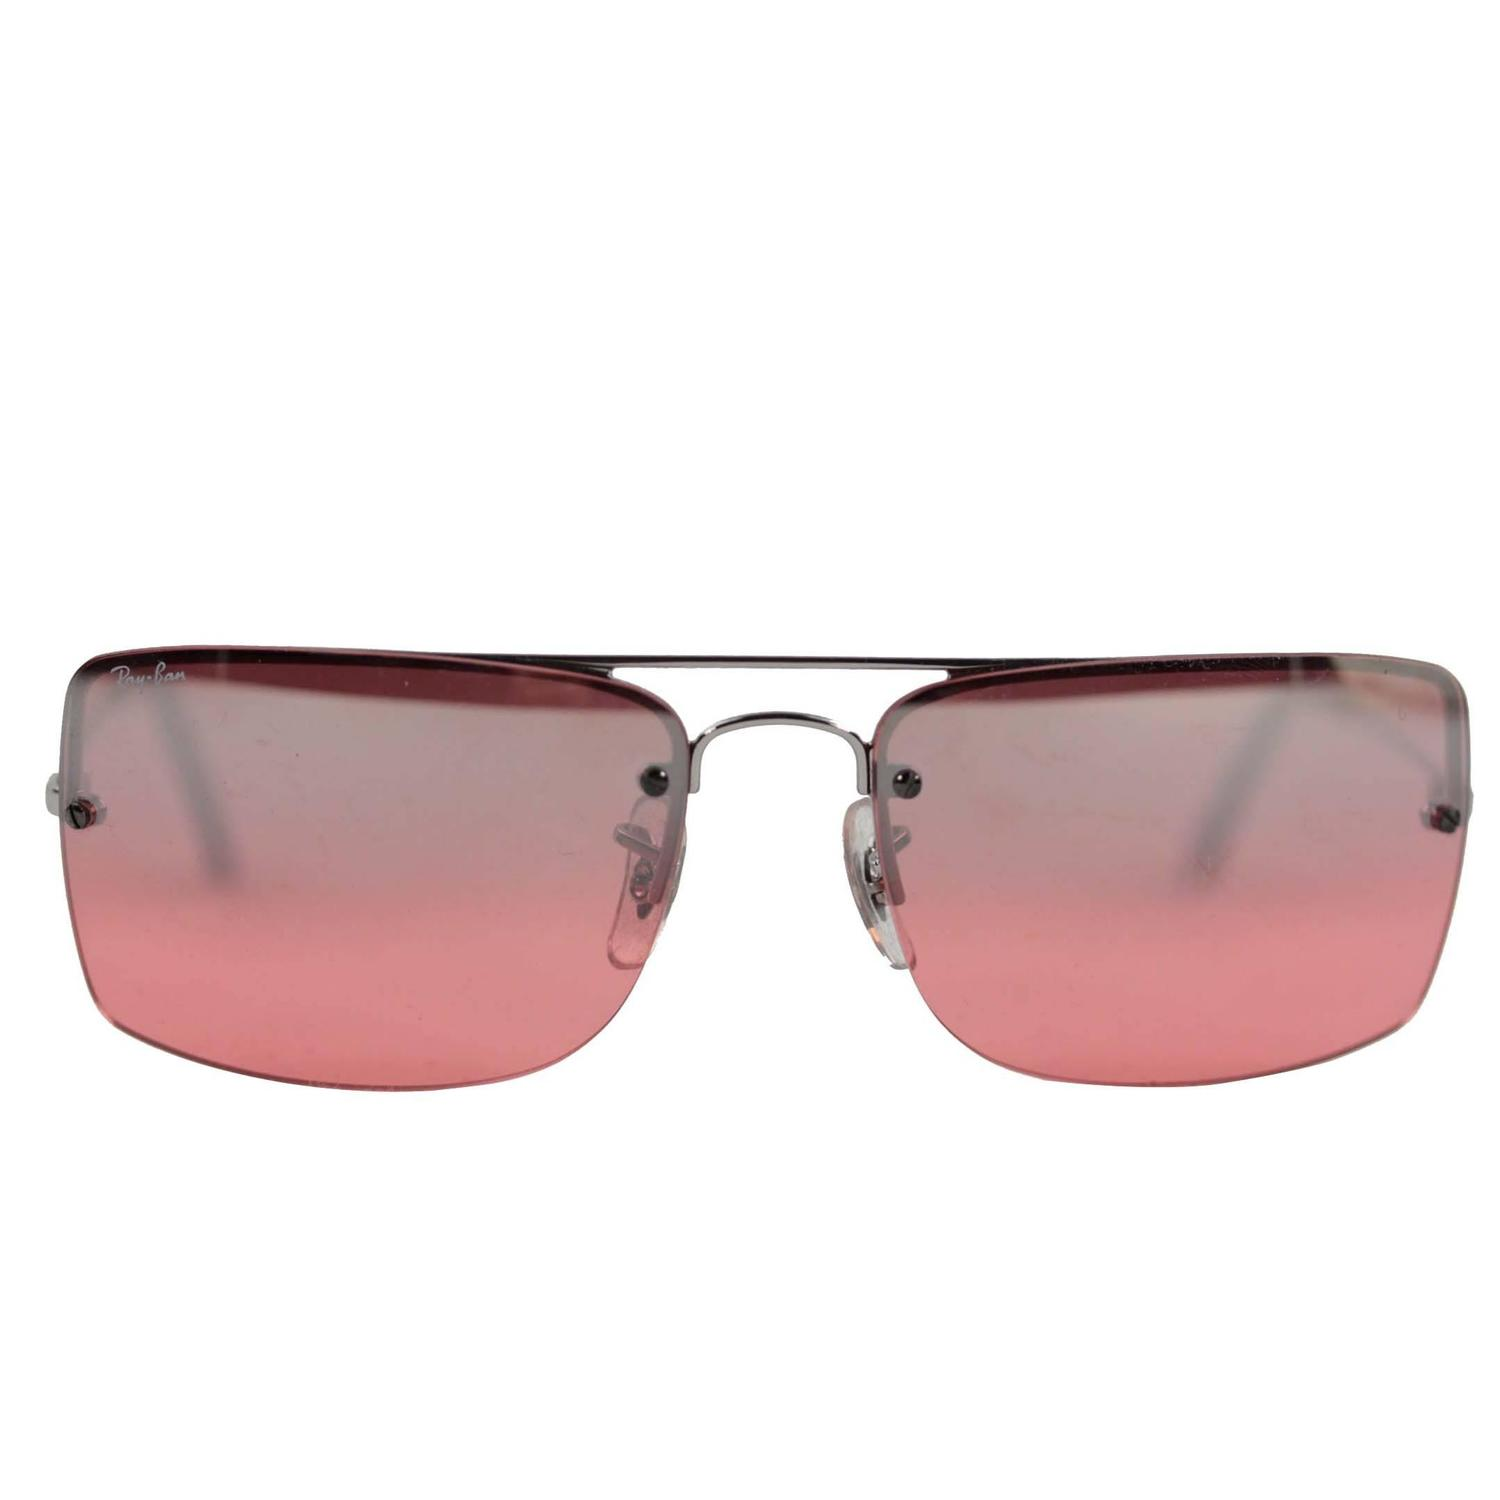 ray ban sunglasses case for sale  ray ban sunglasses rb3158 003/7e 59/16 rimless silver/pink lens eyewear w/ case at 1stdibs